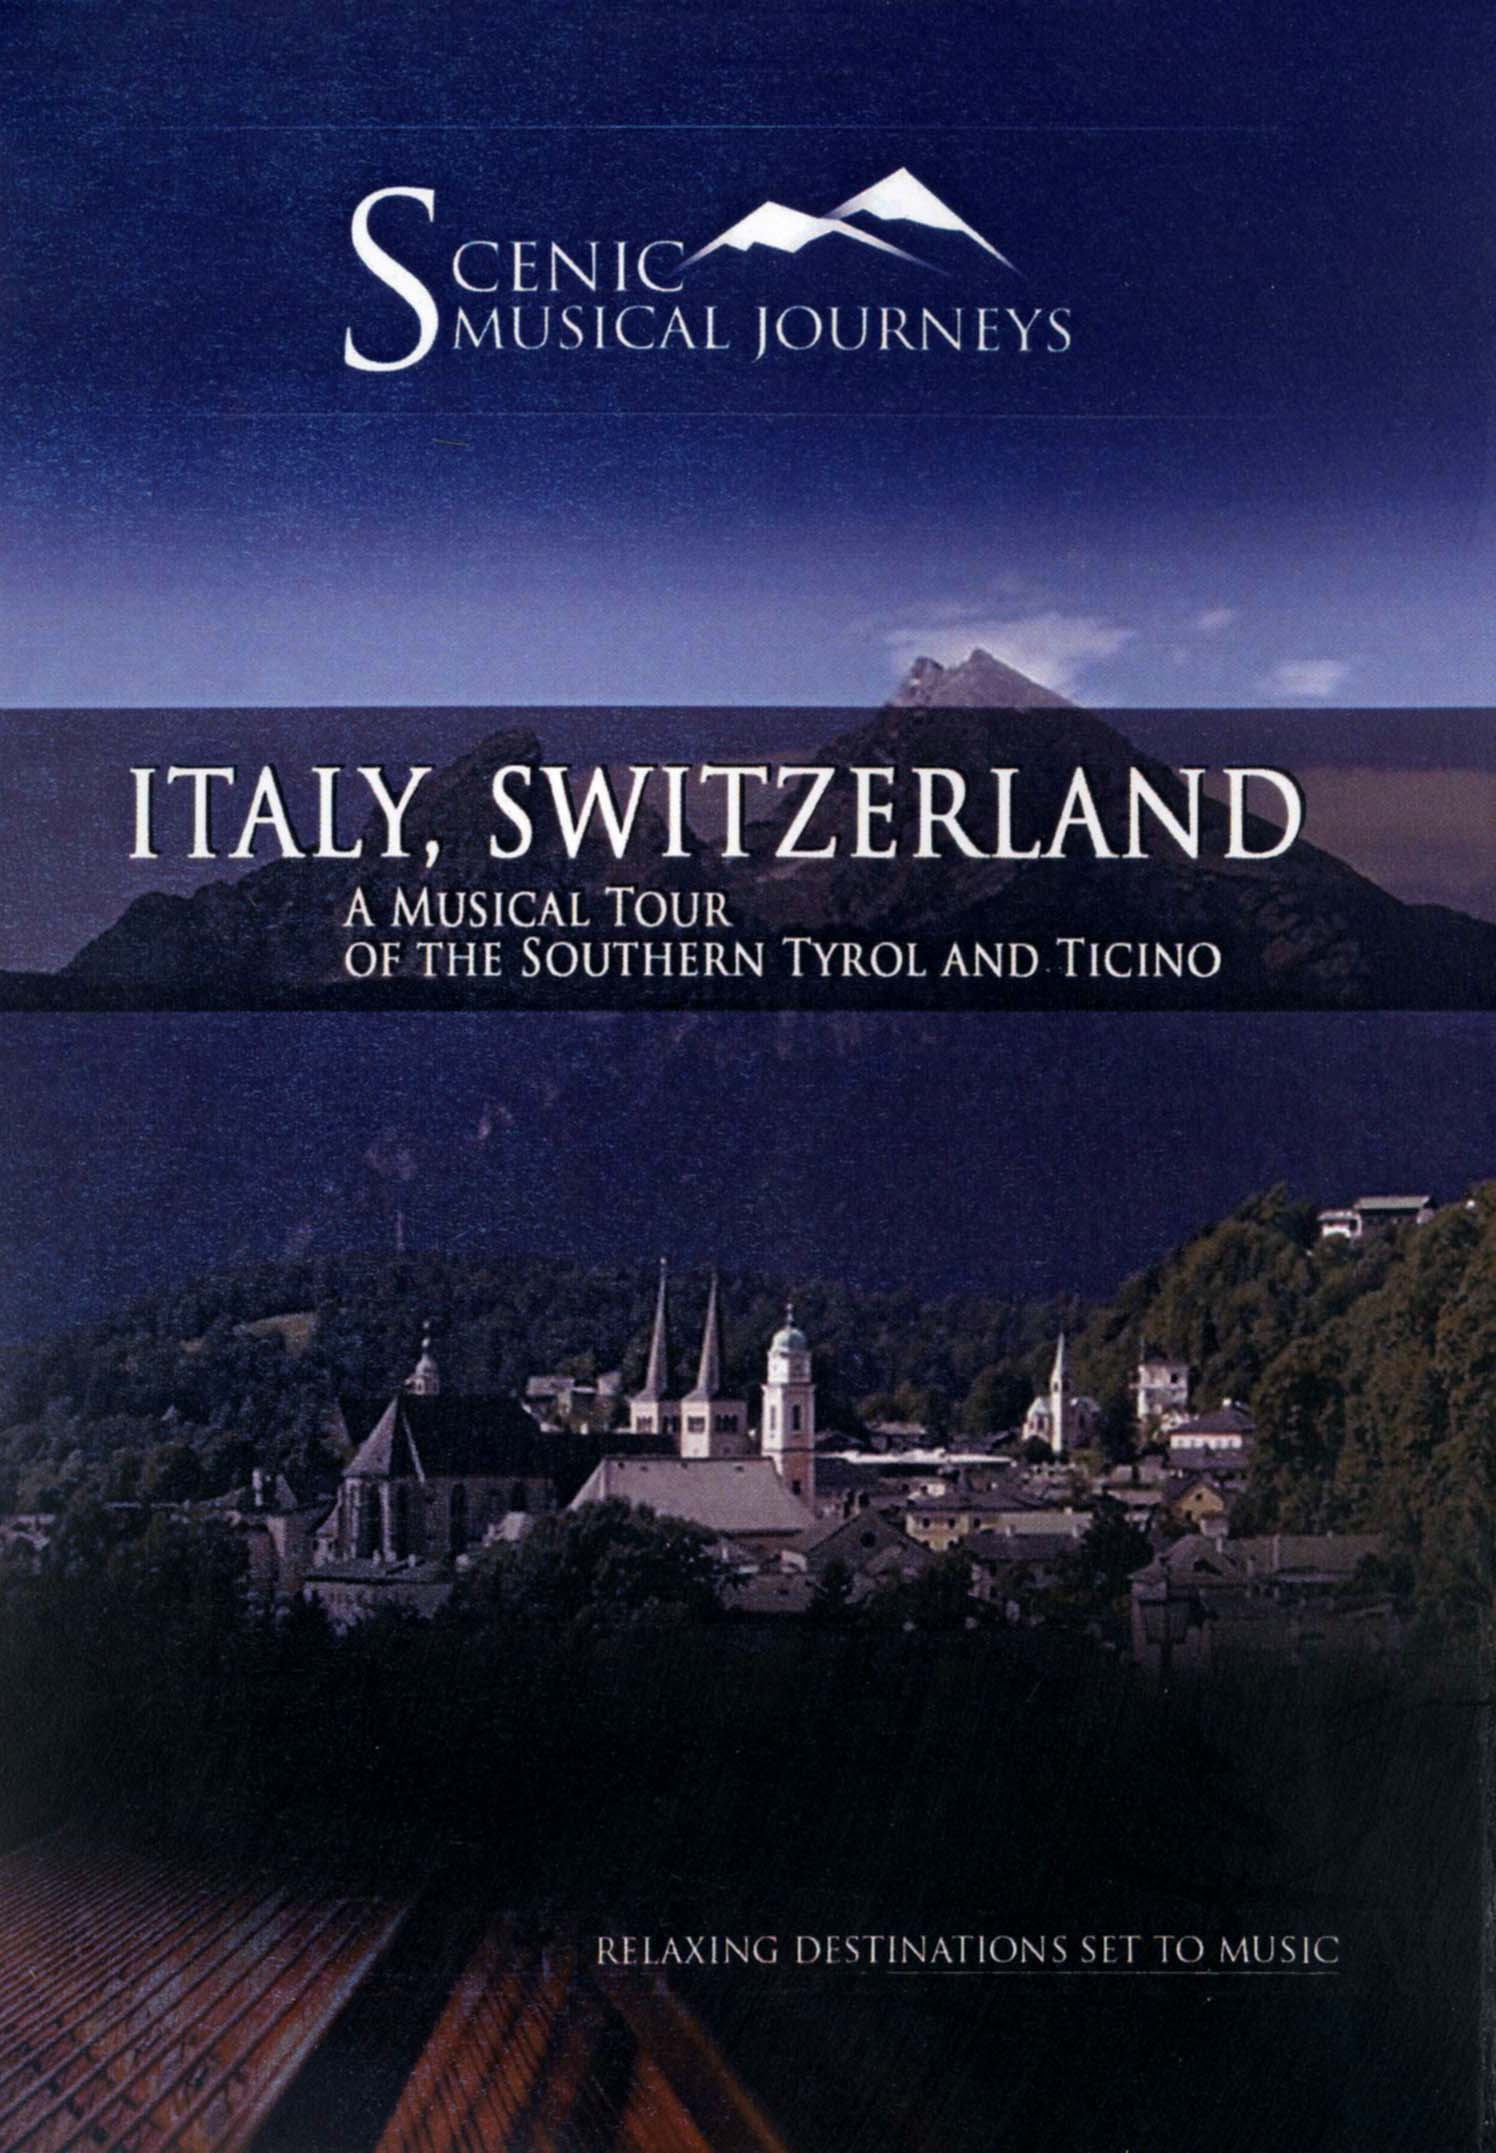 Scenic Musical Journeys: Italy, Switzerland - A Musical tour of the Southern Tyrol and Ticino